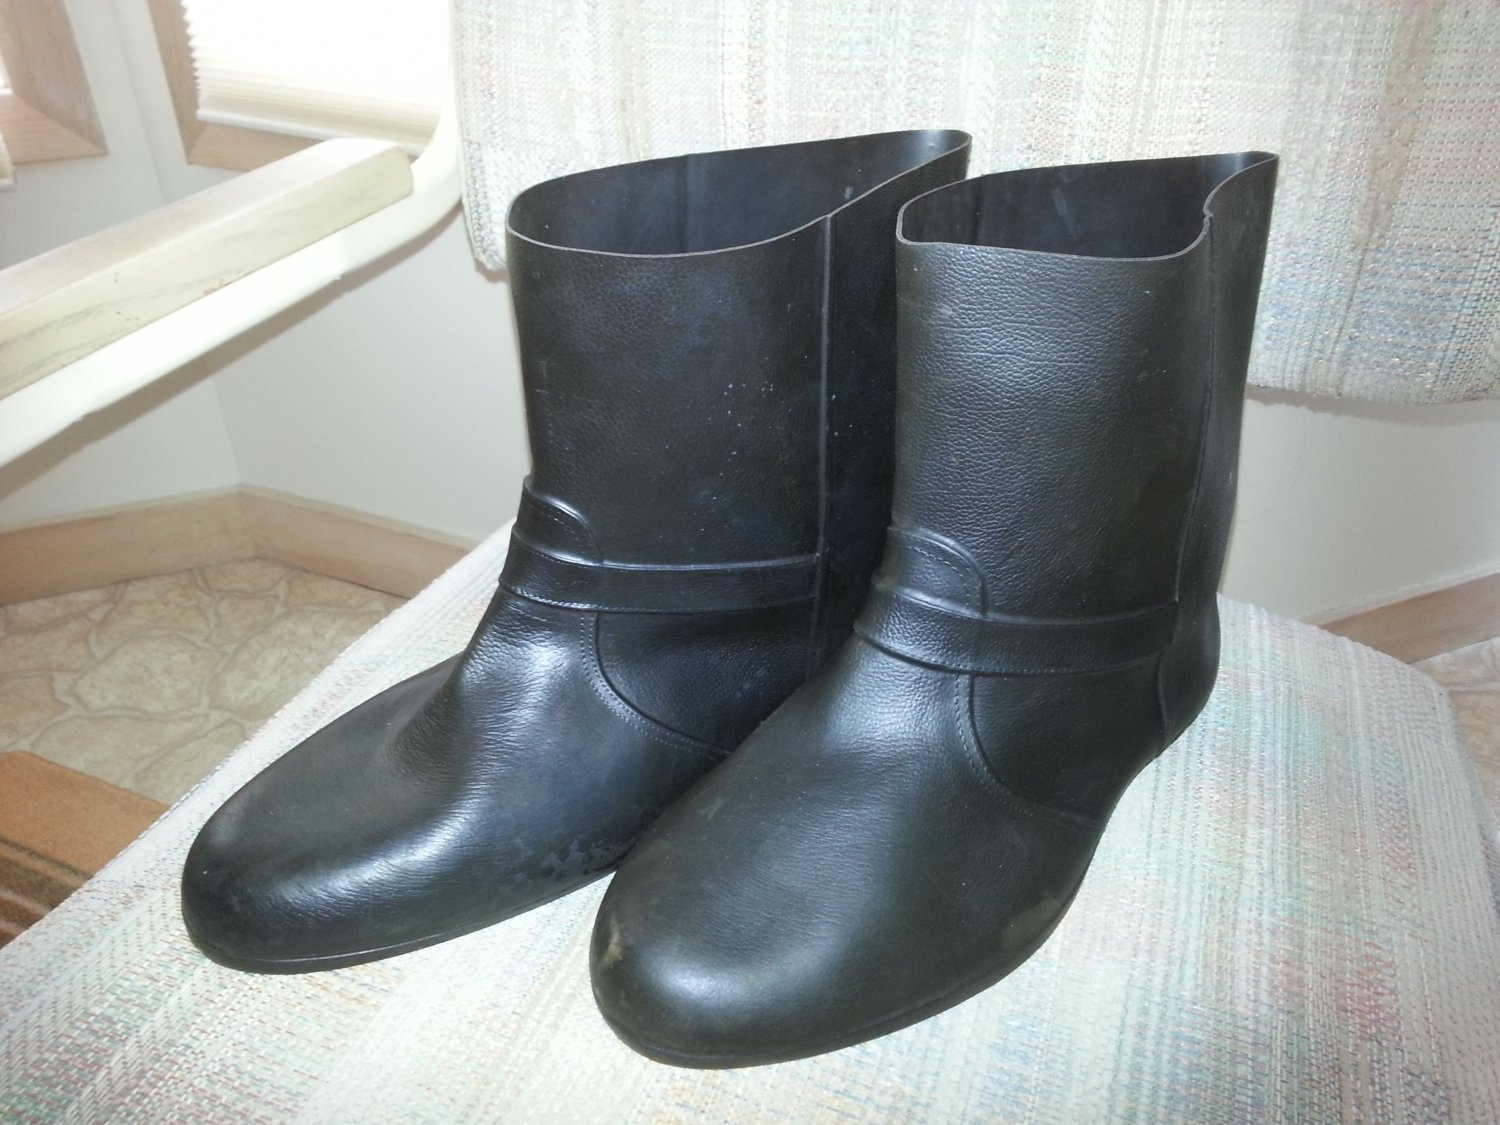 Vintage Totes Town Boots - 100% Rubber Overshoes